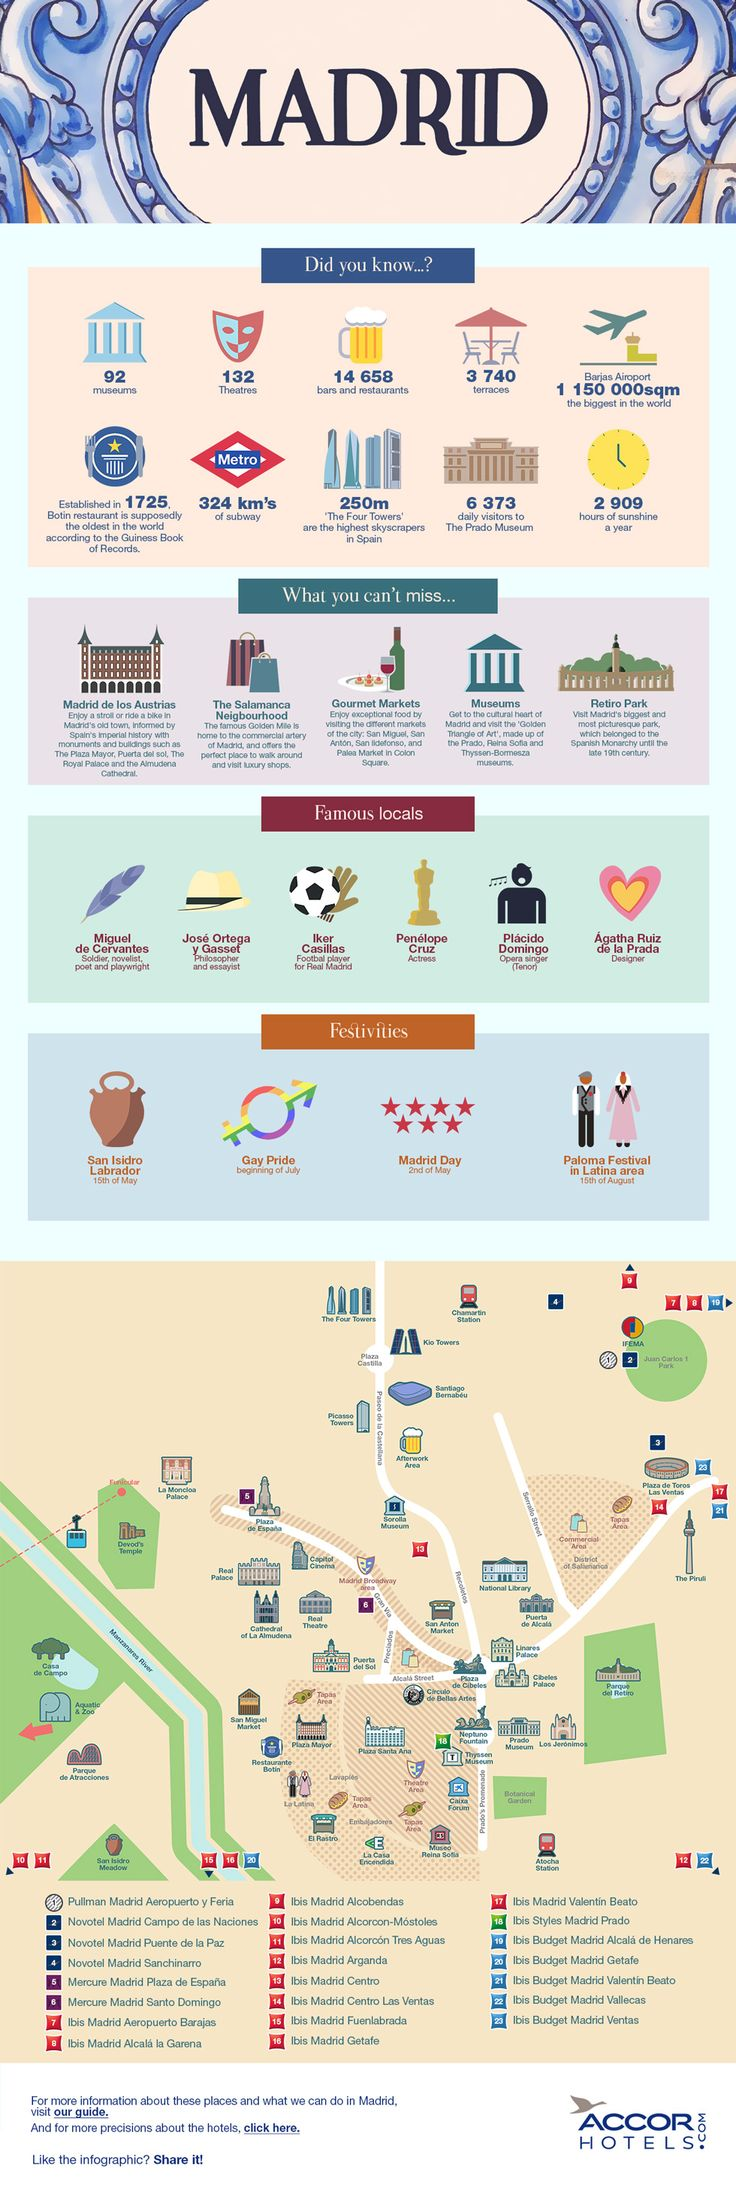 Key Facts About Madrid Infographic